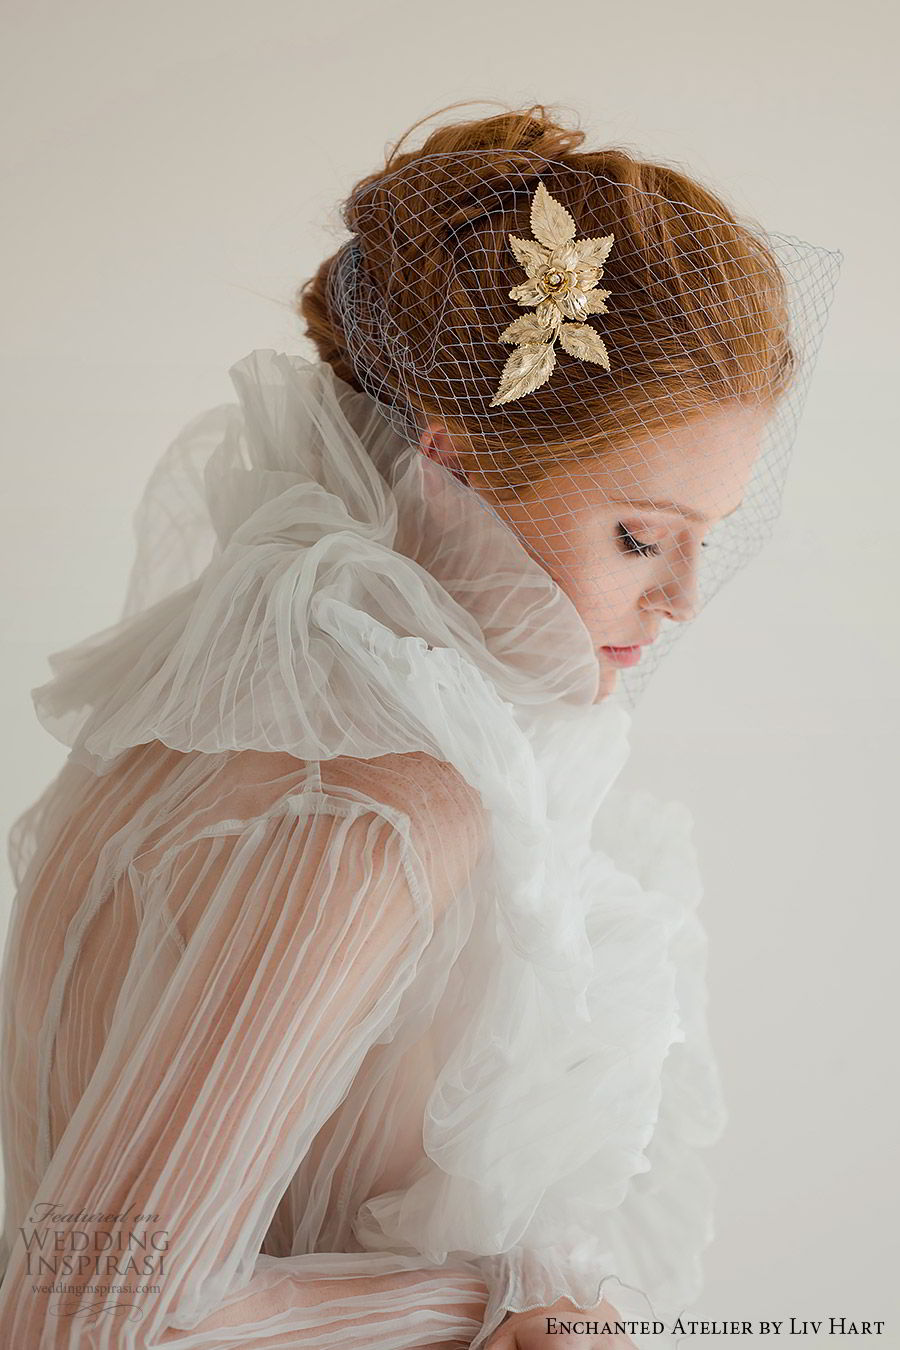 enchanted atelier liv hart fall 2019 accessories gold hairpin birdcage veil (4)  mv